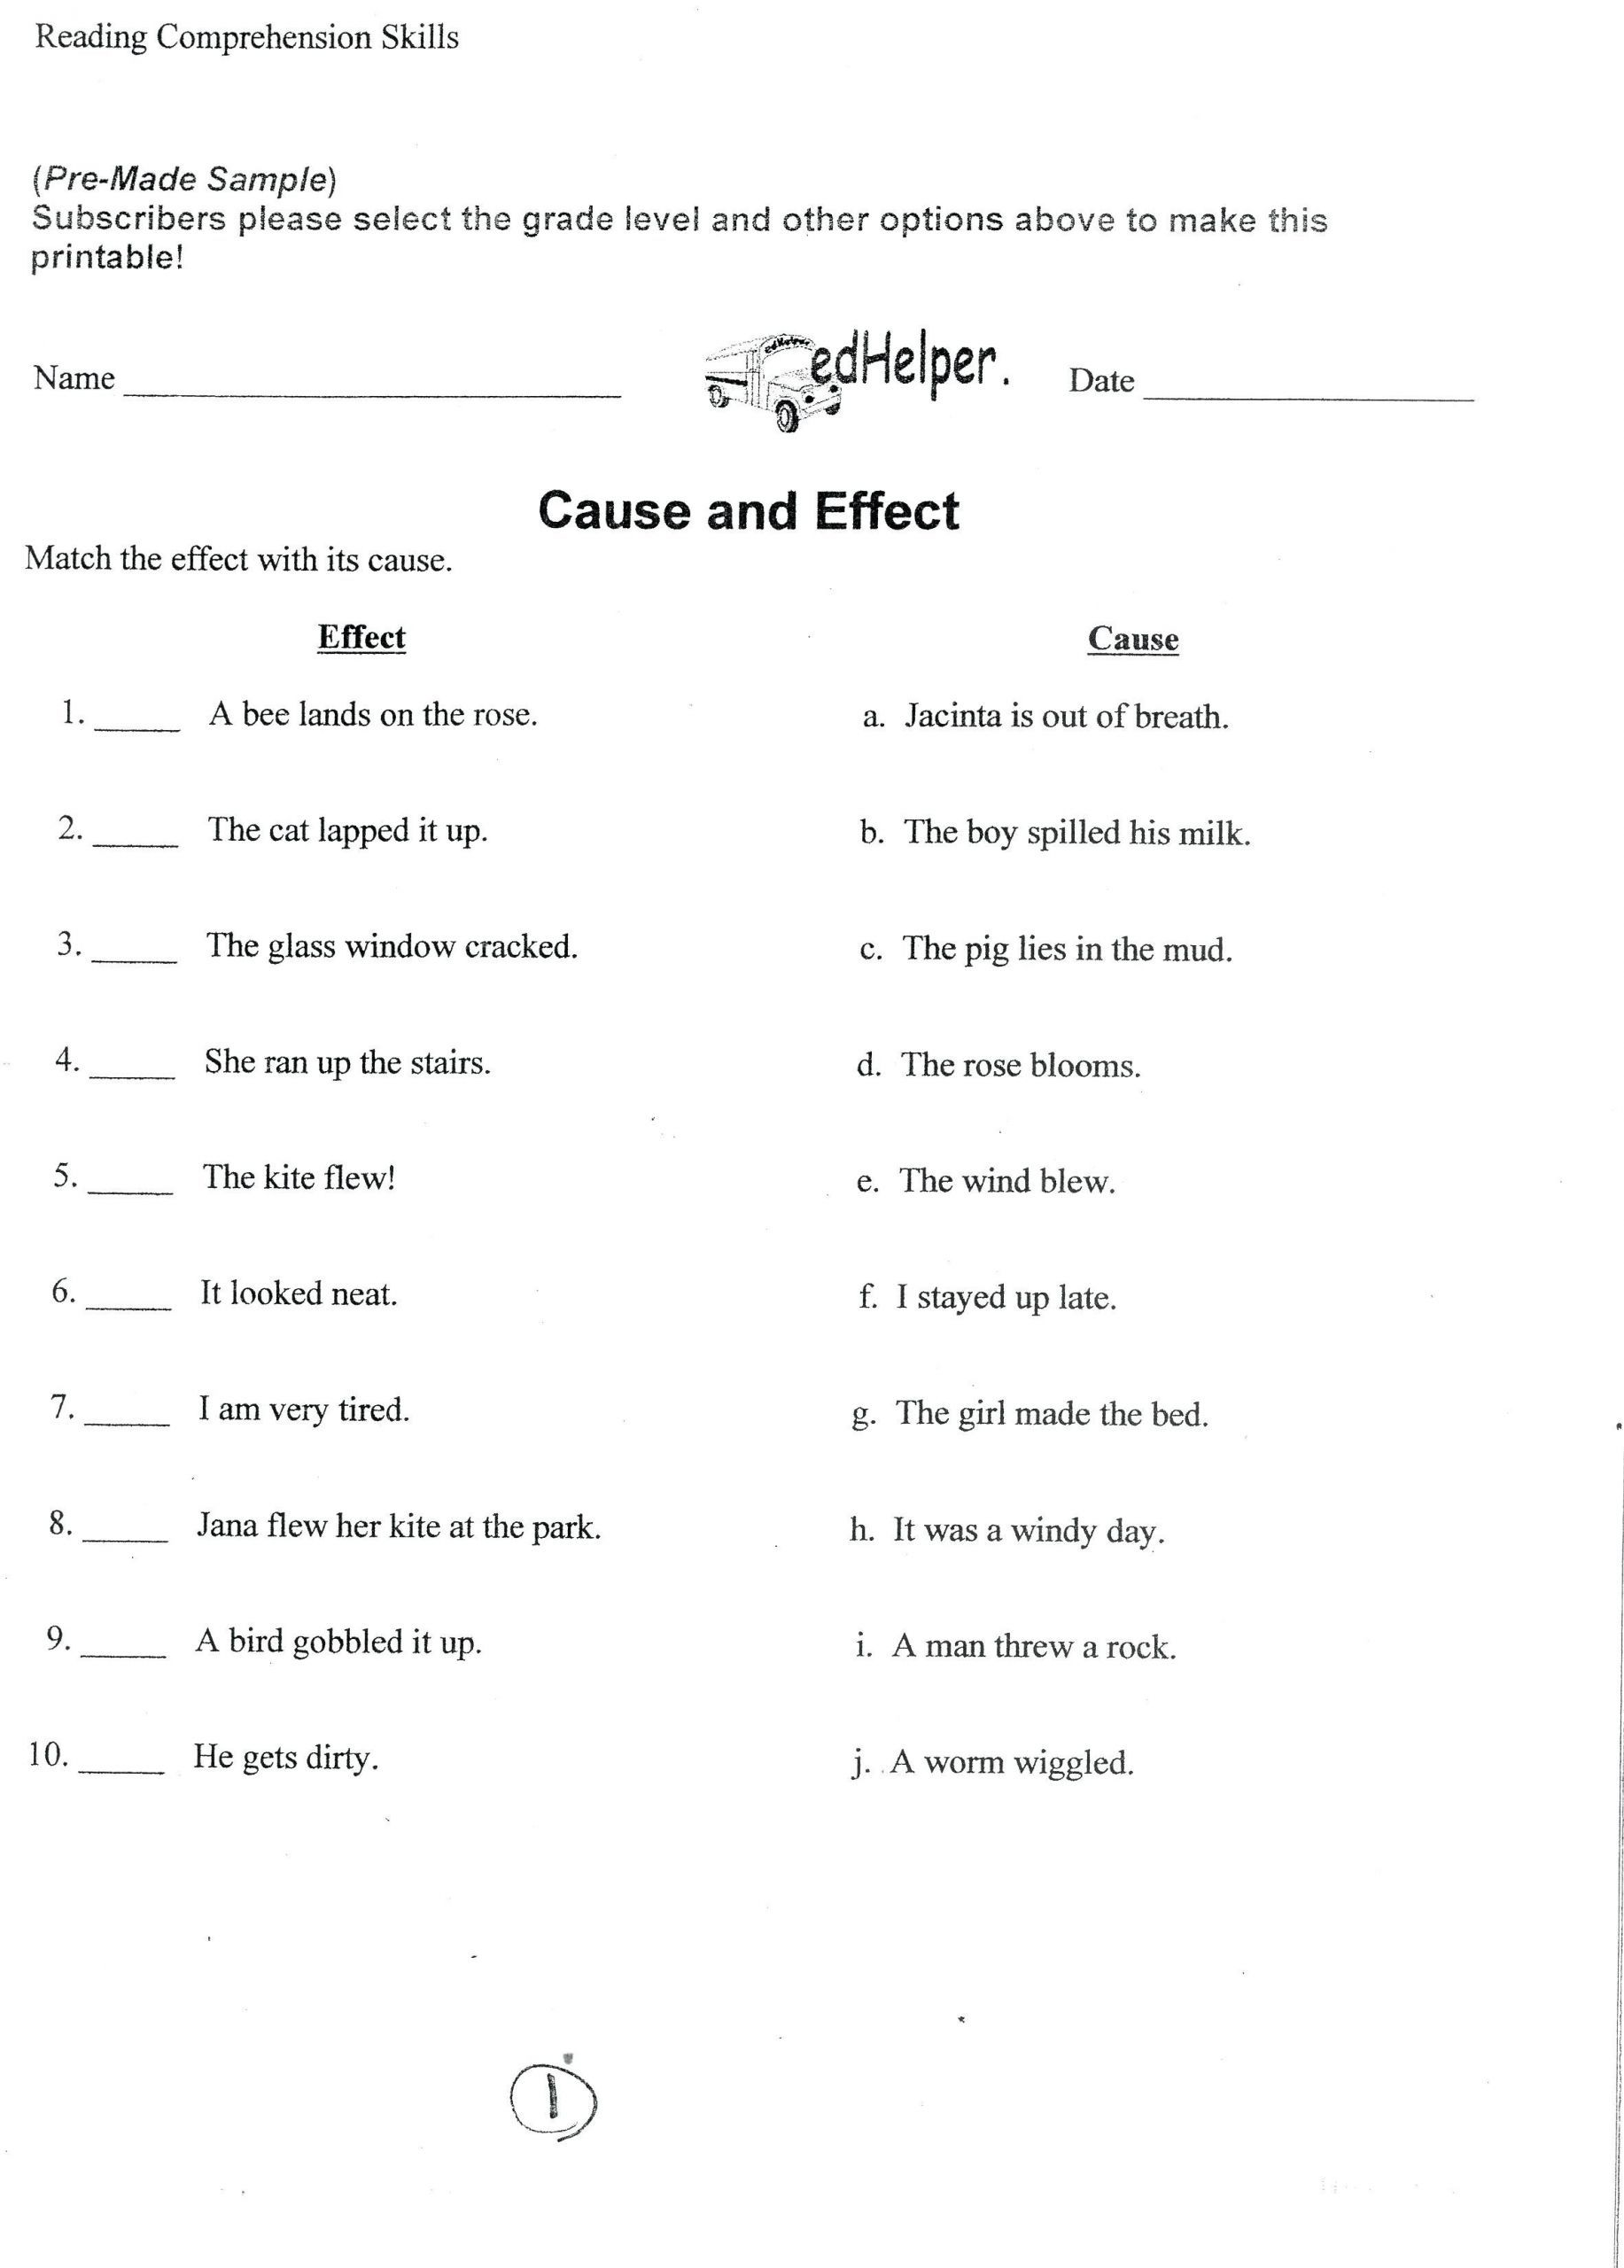 4 Free Math Worksheets Second Grade 2 Subtraction Subtract 2 Digit Numbers With Regroupin Reading Comprehension Worksheets Math Worksheets Free Math Worksheets